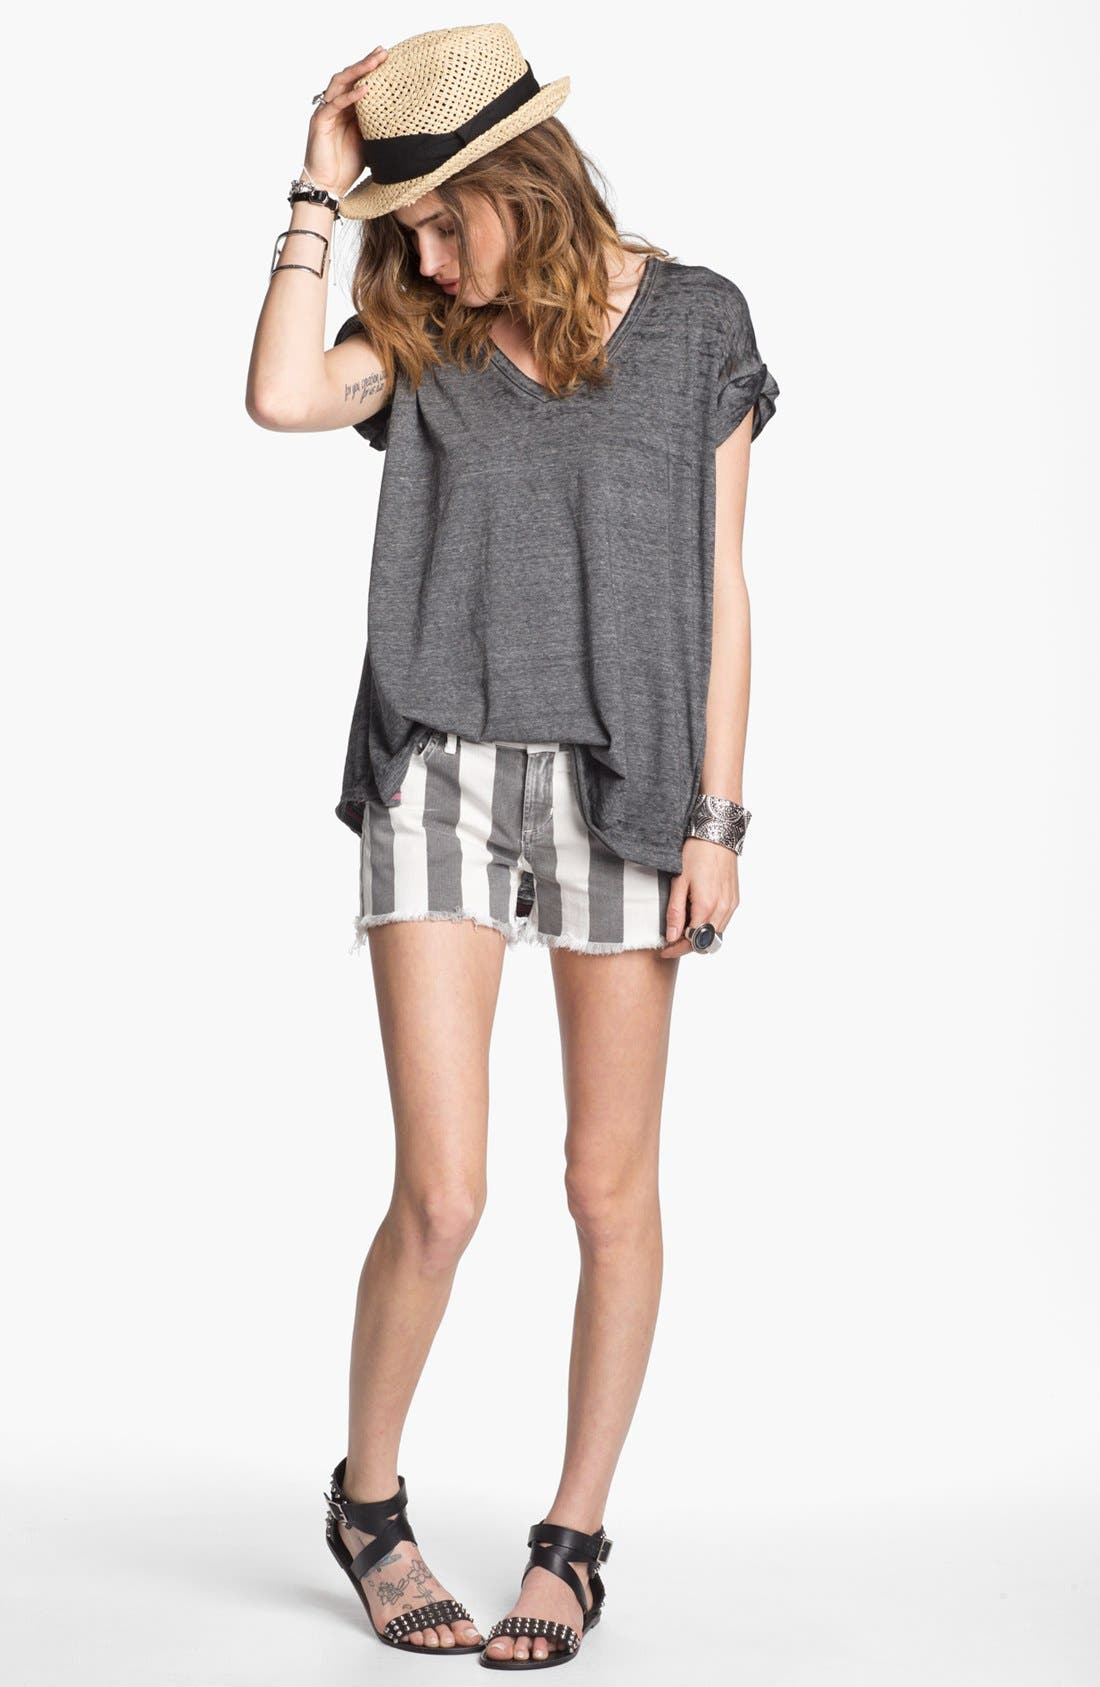 Alternate Image 1 Selected - Free People V-Neck Burnout Tee & Citizens of Humanity Cutoff Shorts